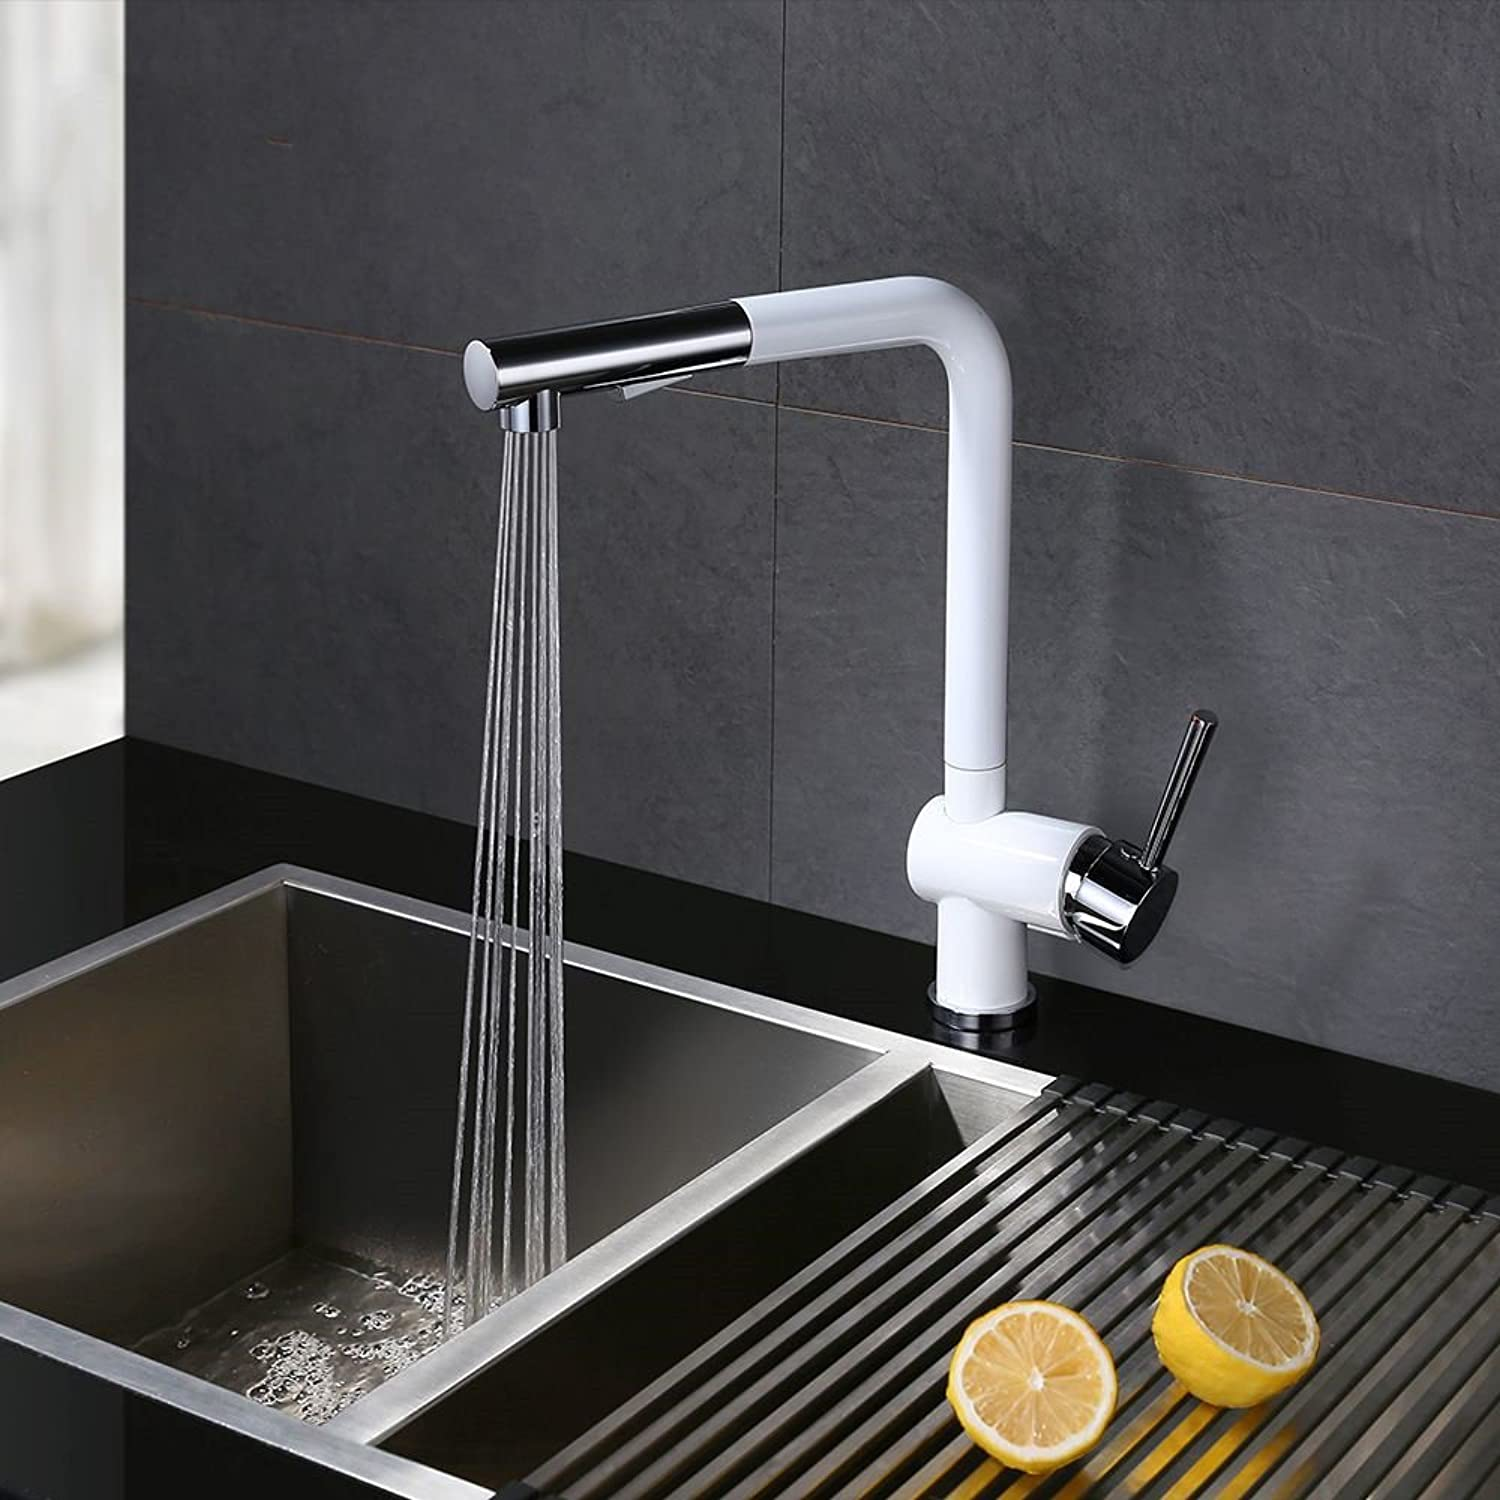 Lpophy Bathroom Sink Mixer Taps Faucet Bath Waterfall Cold and Hot Water Tap for Washroom Bathroom and Kitchen Full Copper 360° redating Pull-Out White